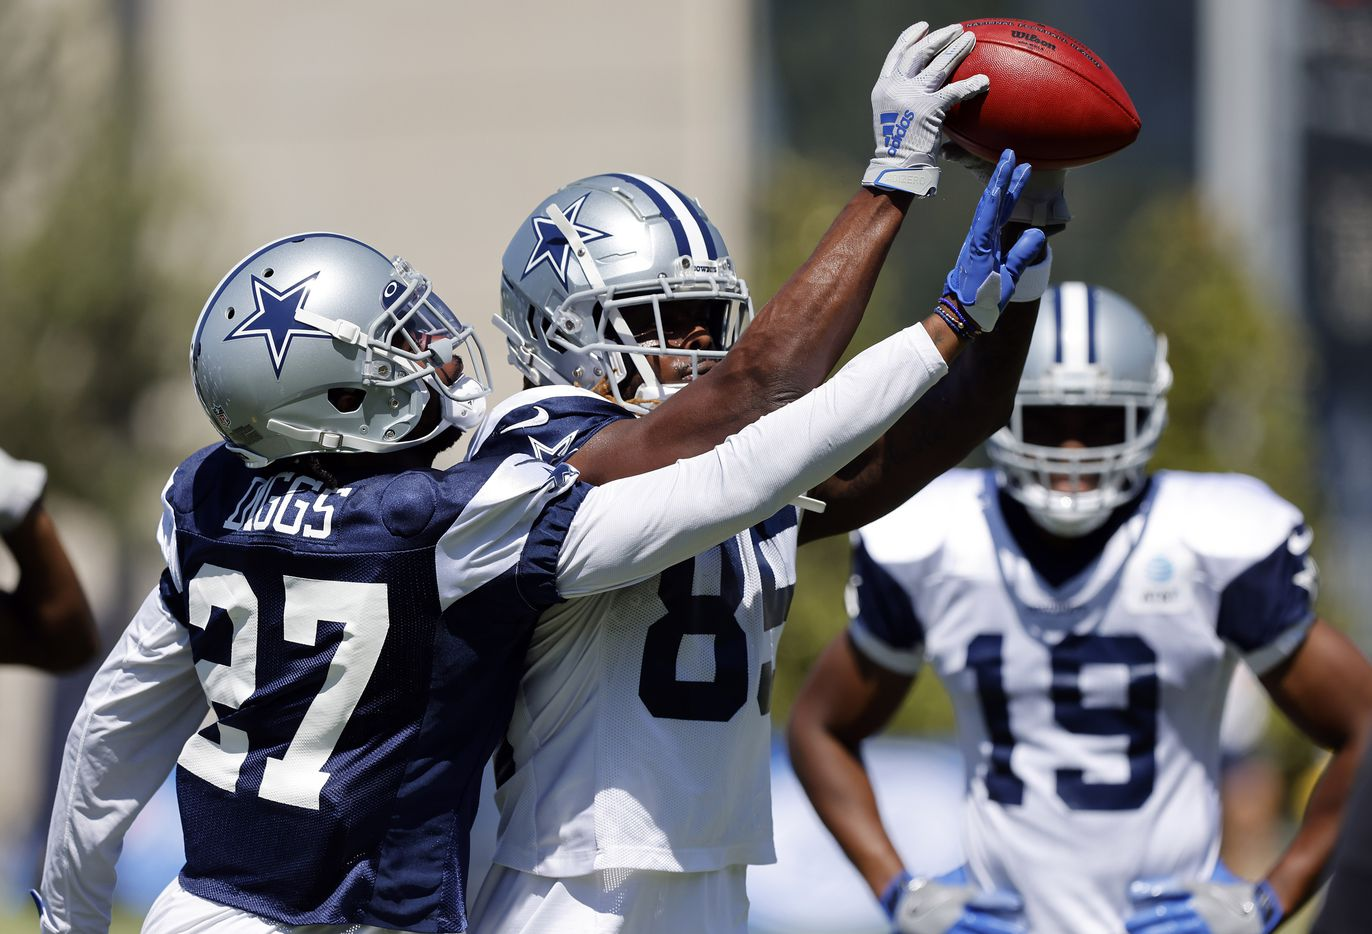 Dallas Cowboys cornerback Trevon Diggs (27) trees to knock the ball from Dallas Cowboys wide receiver Noah Brown's (85) hands during Training Camp practice drills at The Star in Frisco, Texas, Tuesday, August 24, 2021.(Tom Fox/The Dallas Morning News)